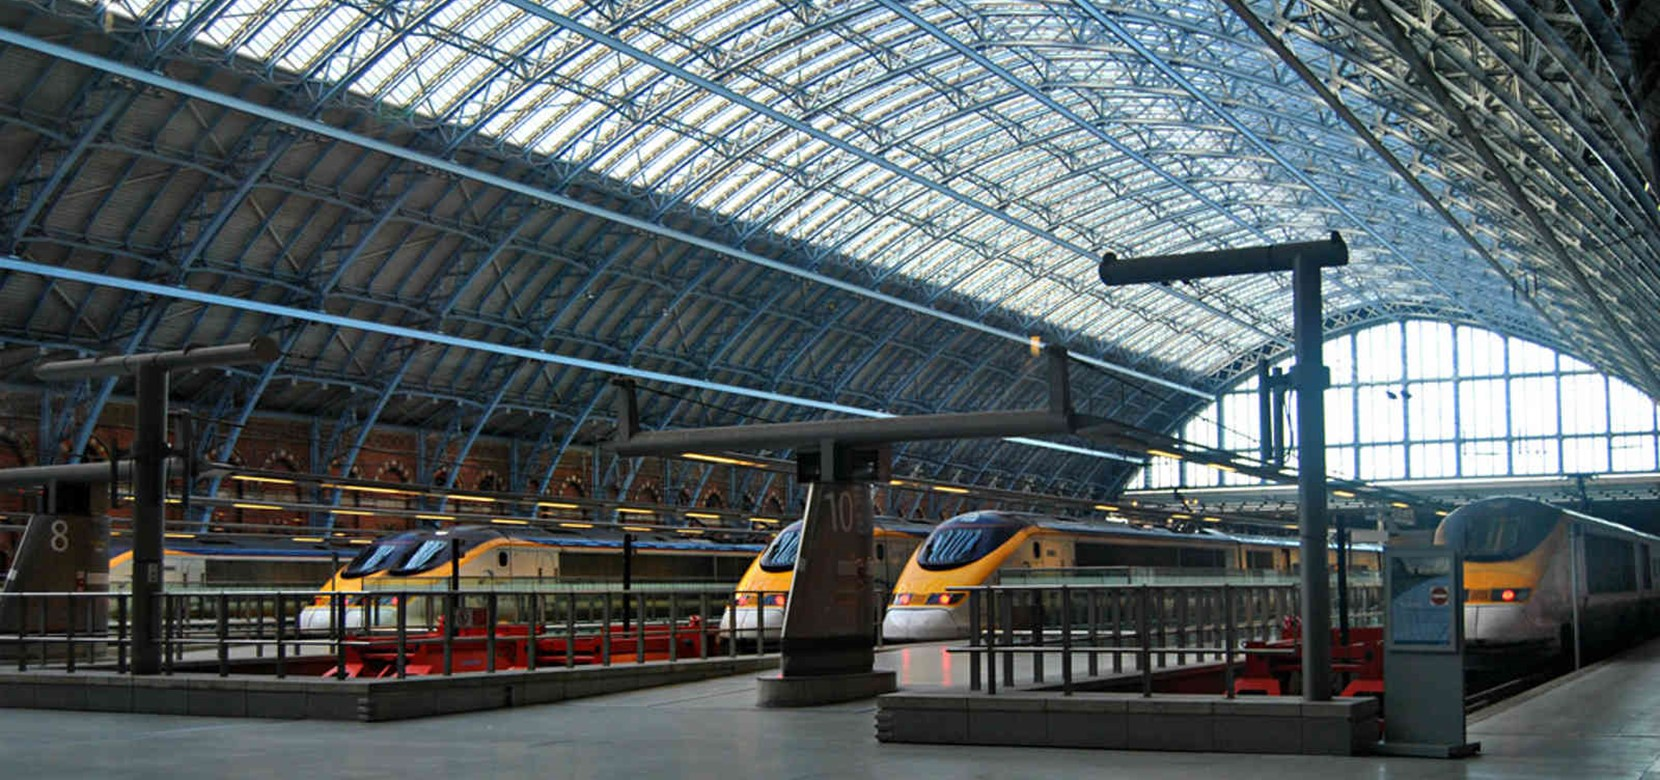 Eurostar London to Amsterdam